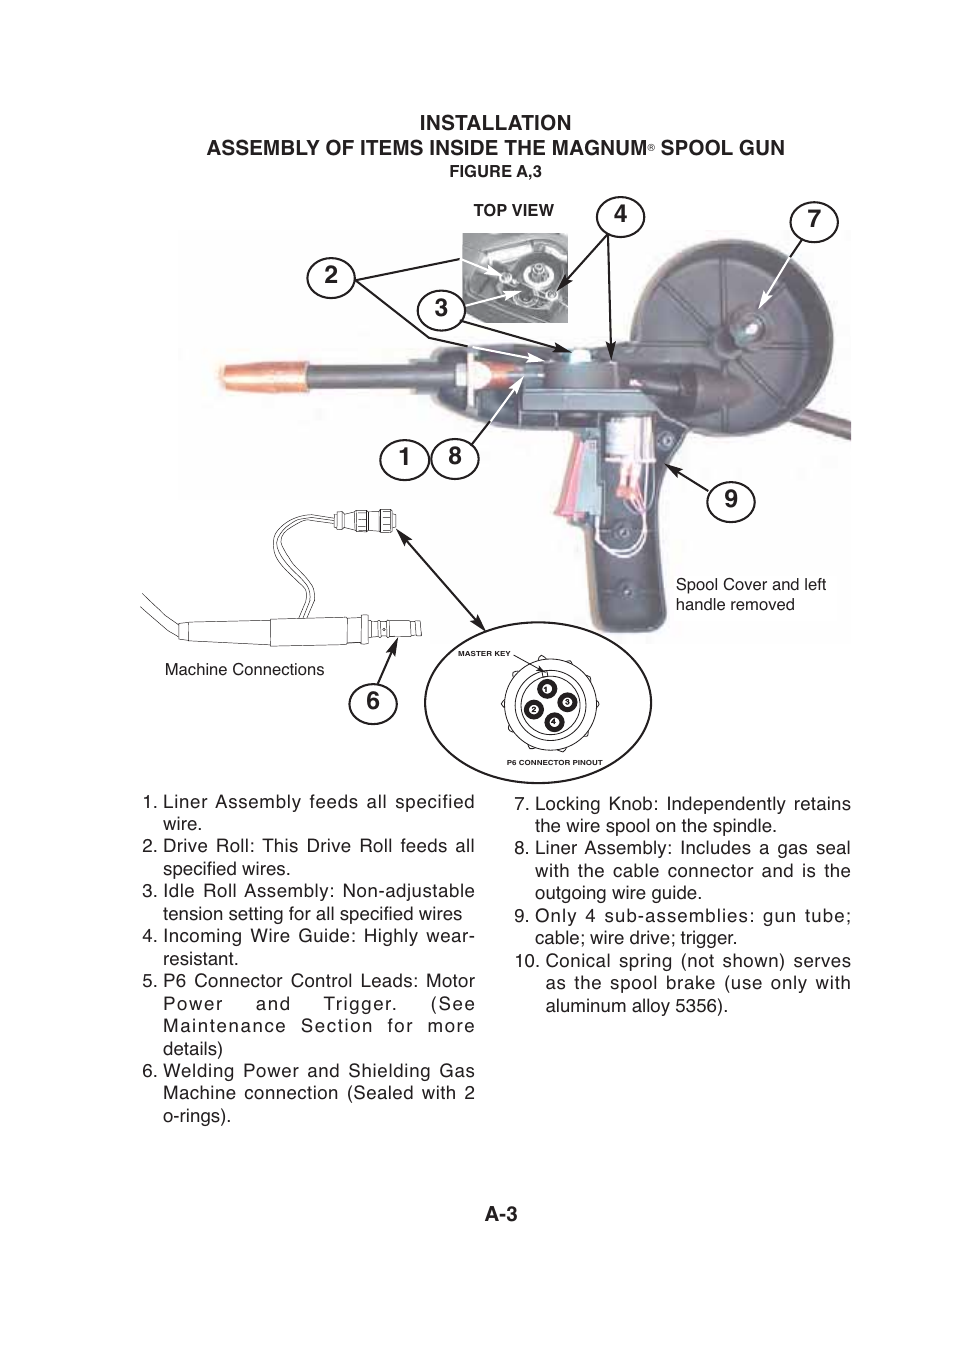 Weapon Wiring Diagram Libraries Lincoln Furnace 100sg Todayslincoln Electric Imt913 Magnum Spool Gun User Manual Page